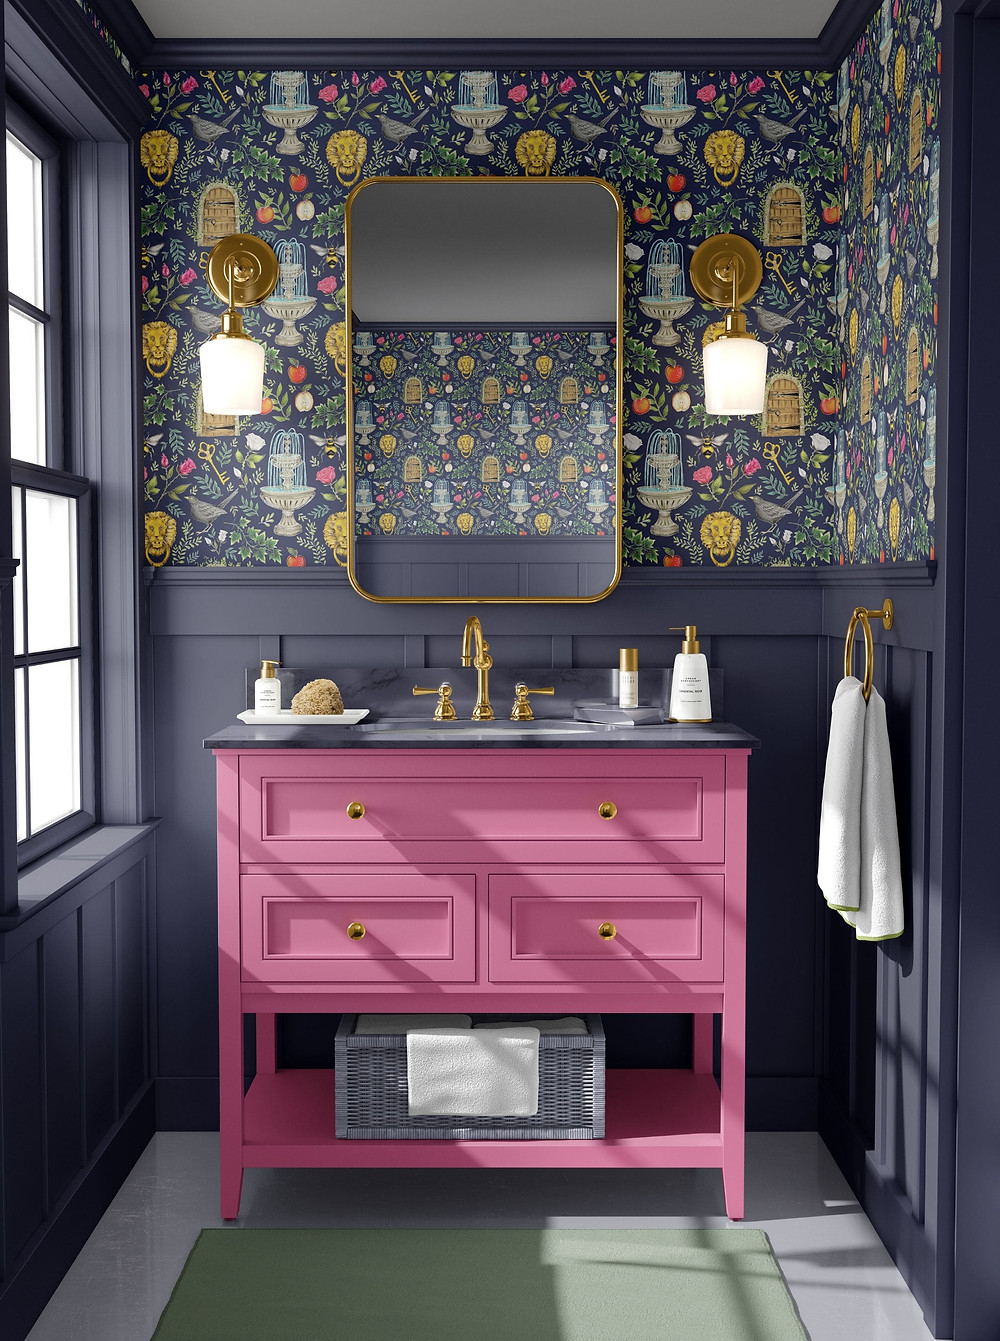 Small bathroom in dark blue tongue and groove with pink vanity unit and colourful wallpaper from Catherine Rowe, brass mirrors and wall sconces